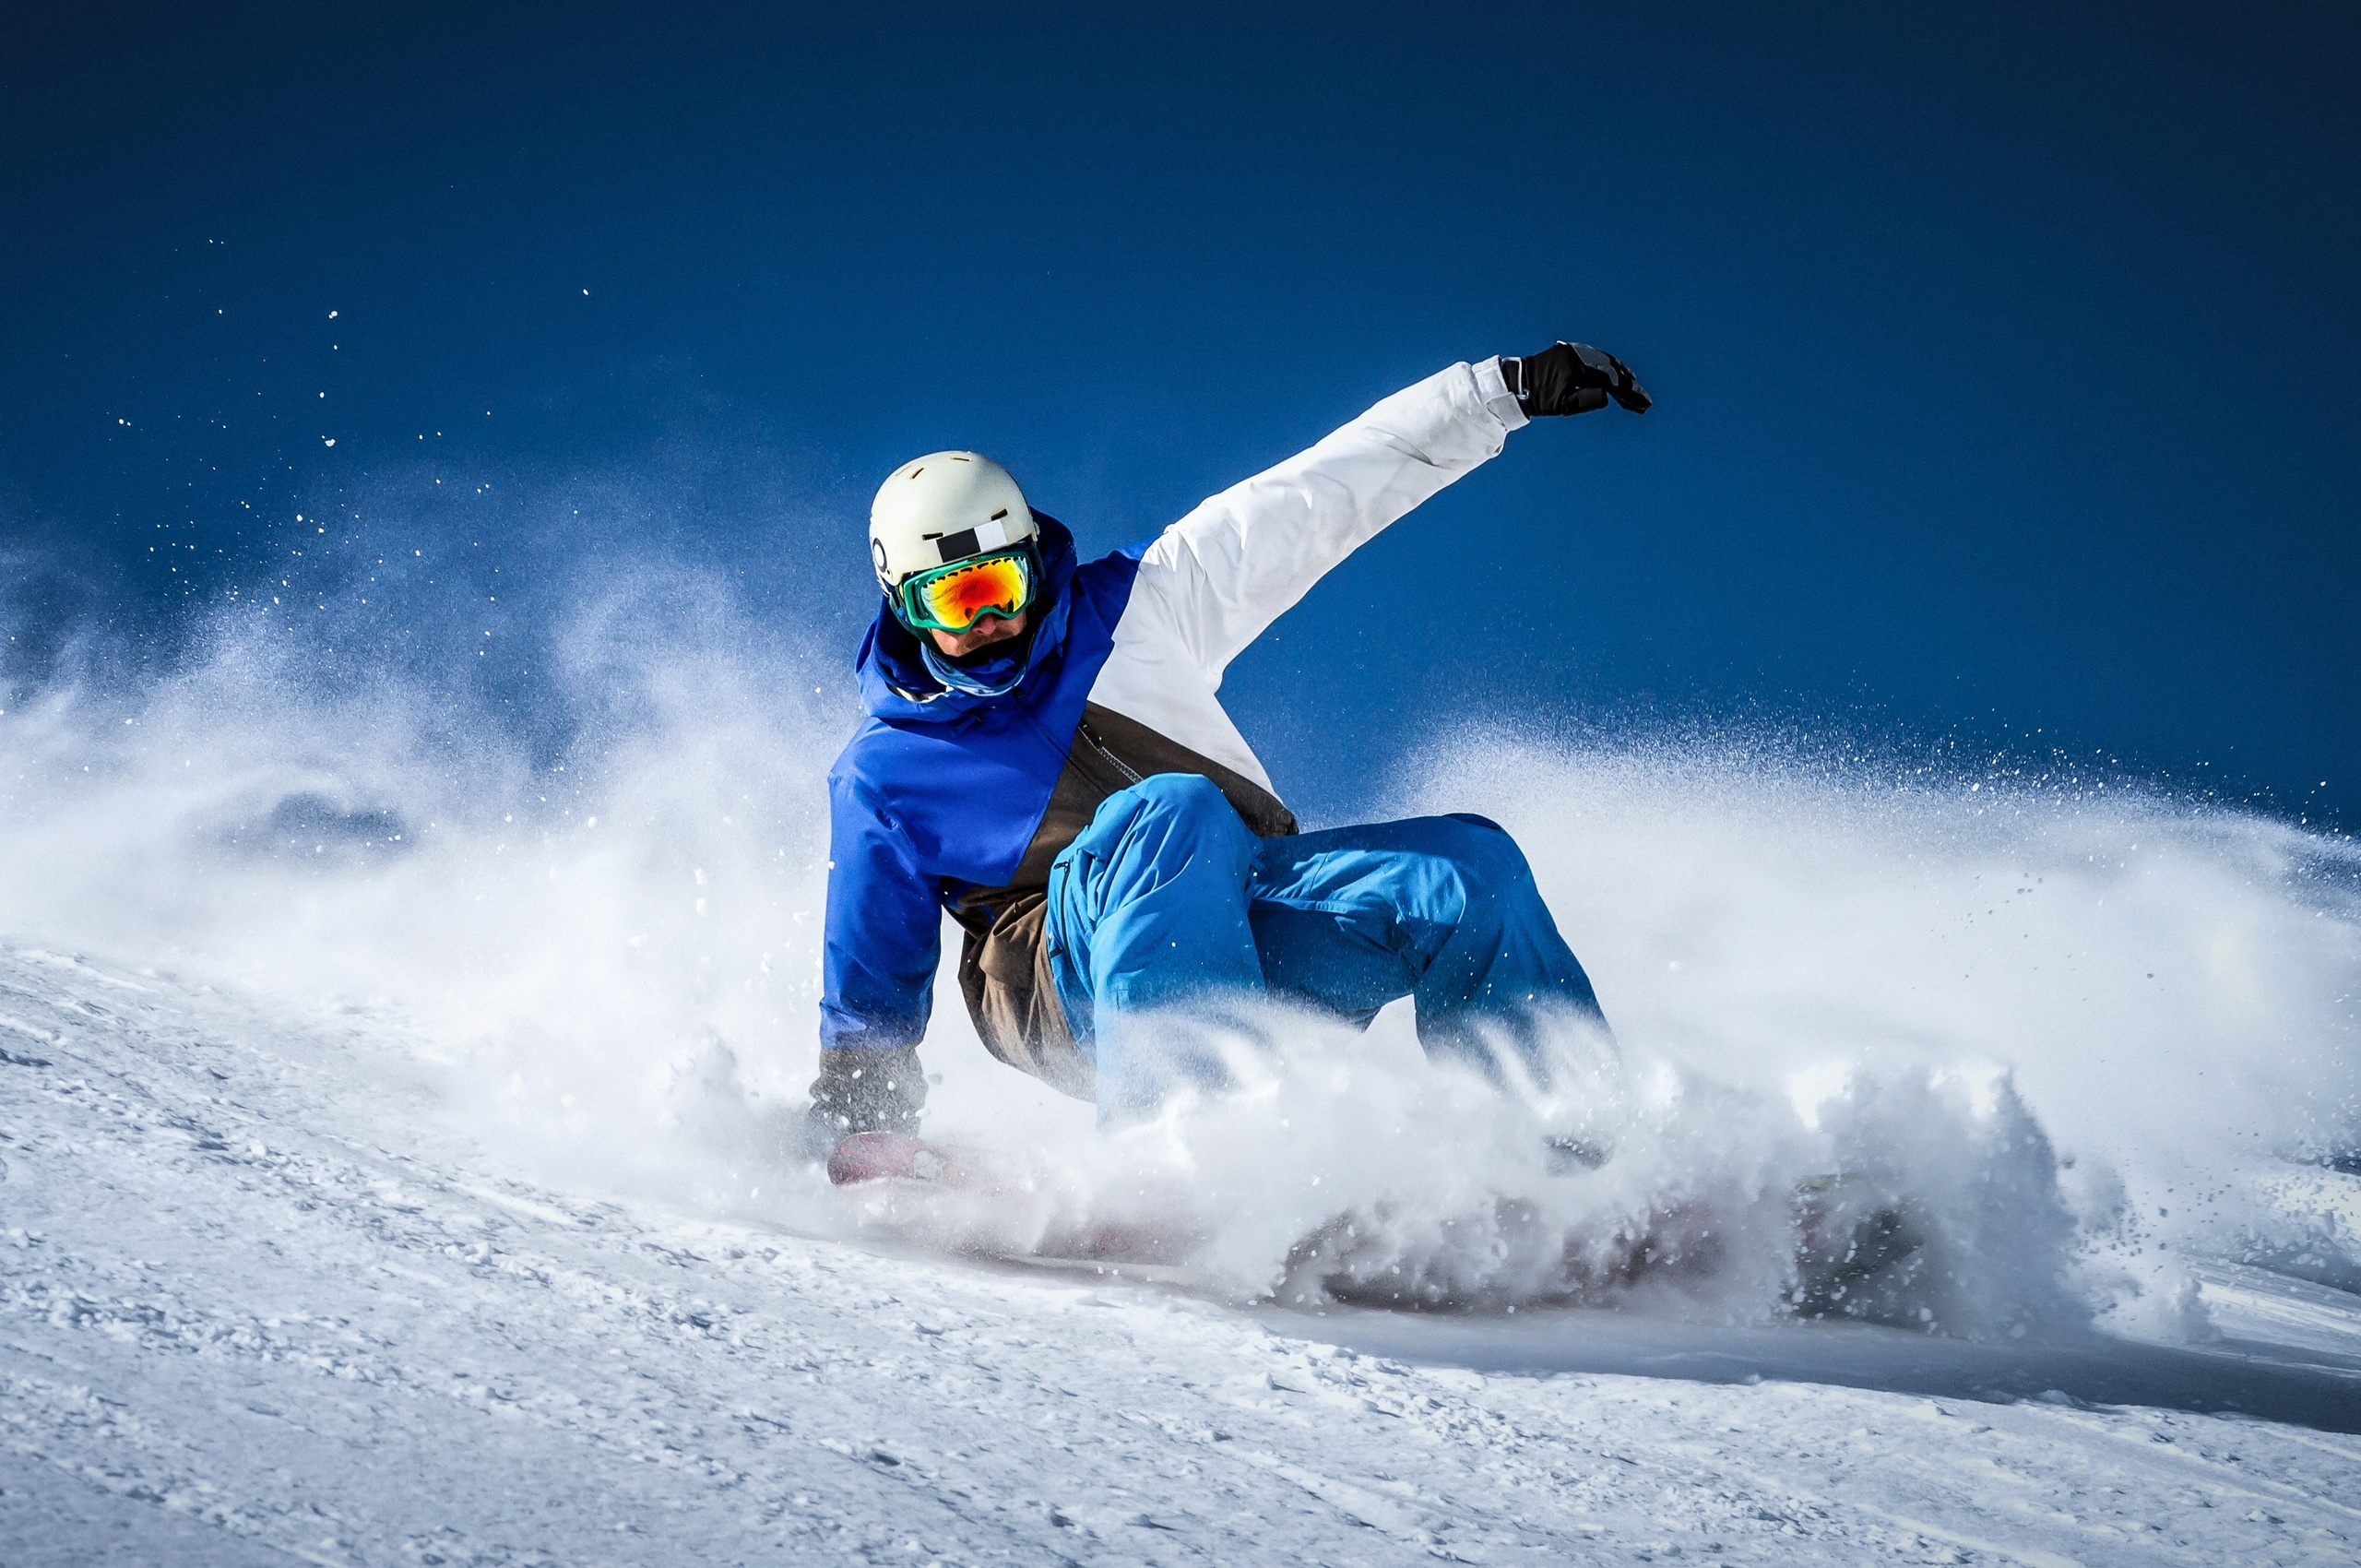 2560x1700 Snowboarding Chromebook Pixel Hd 4k Wallpapers Images Backgrounds Photos And Pictures